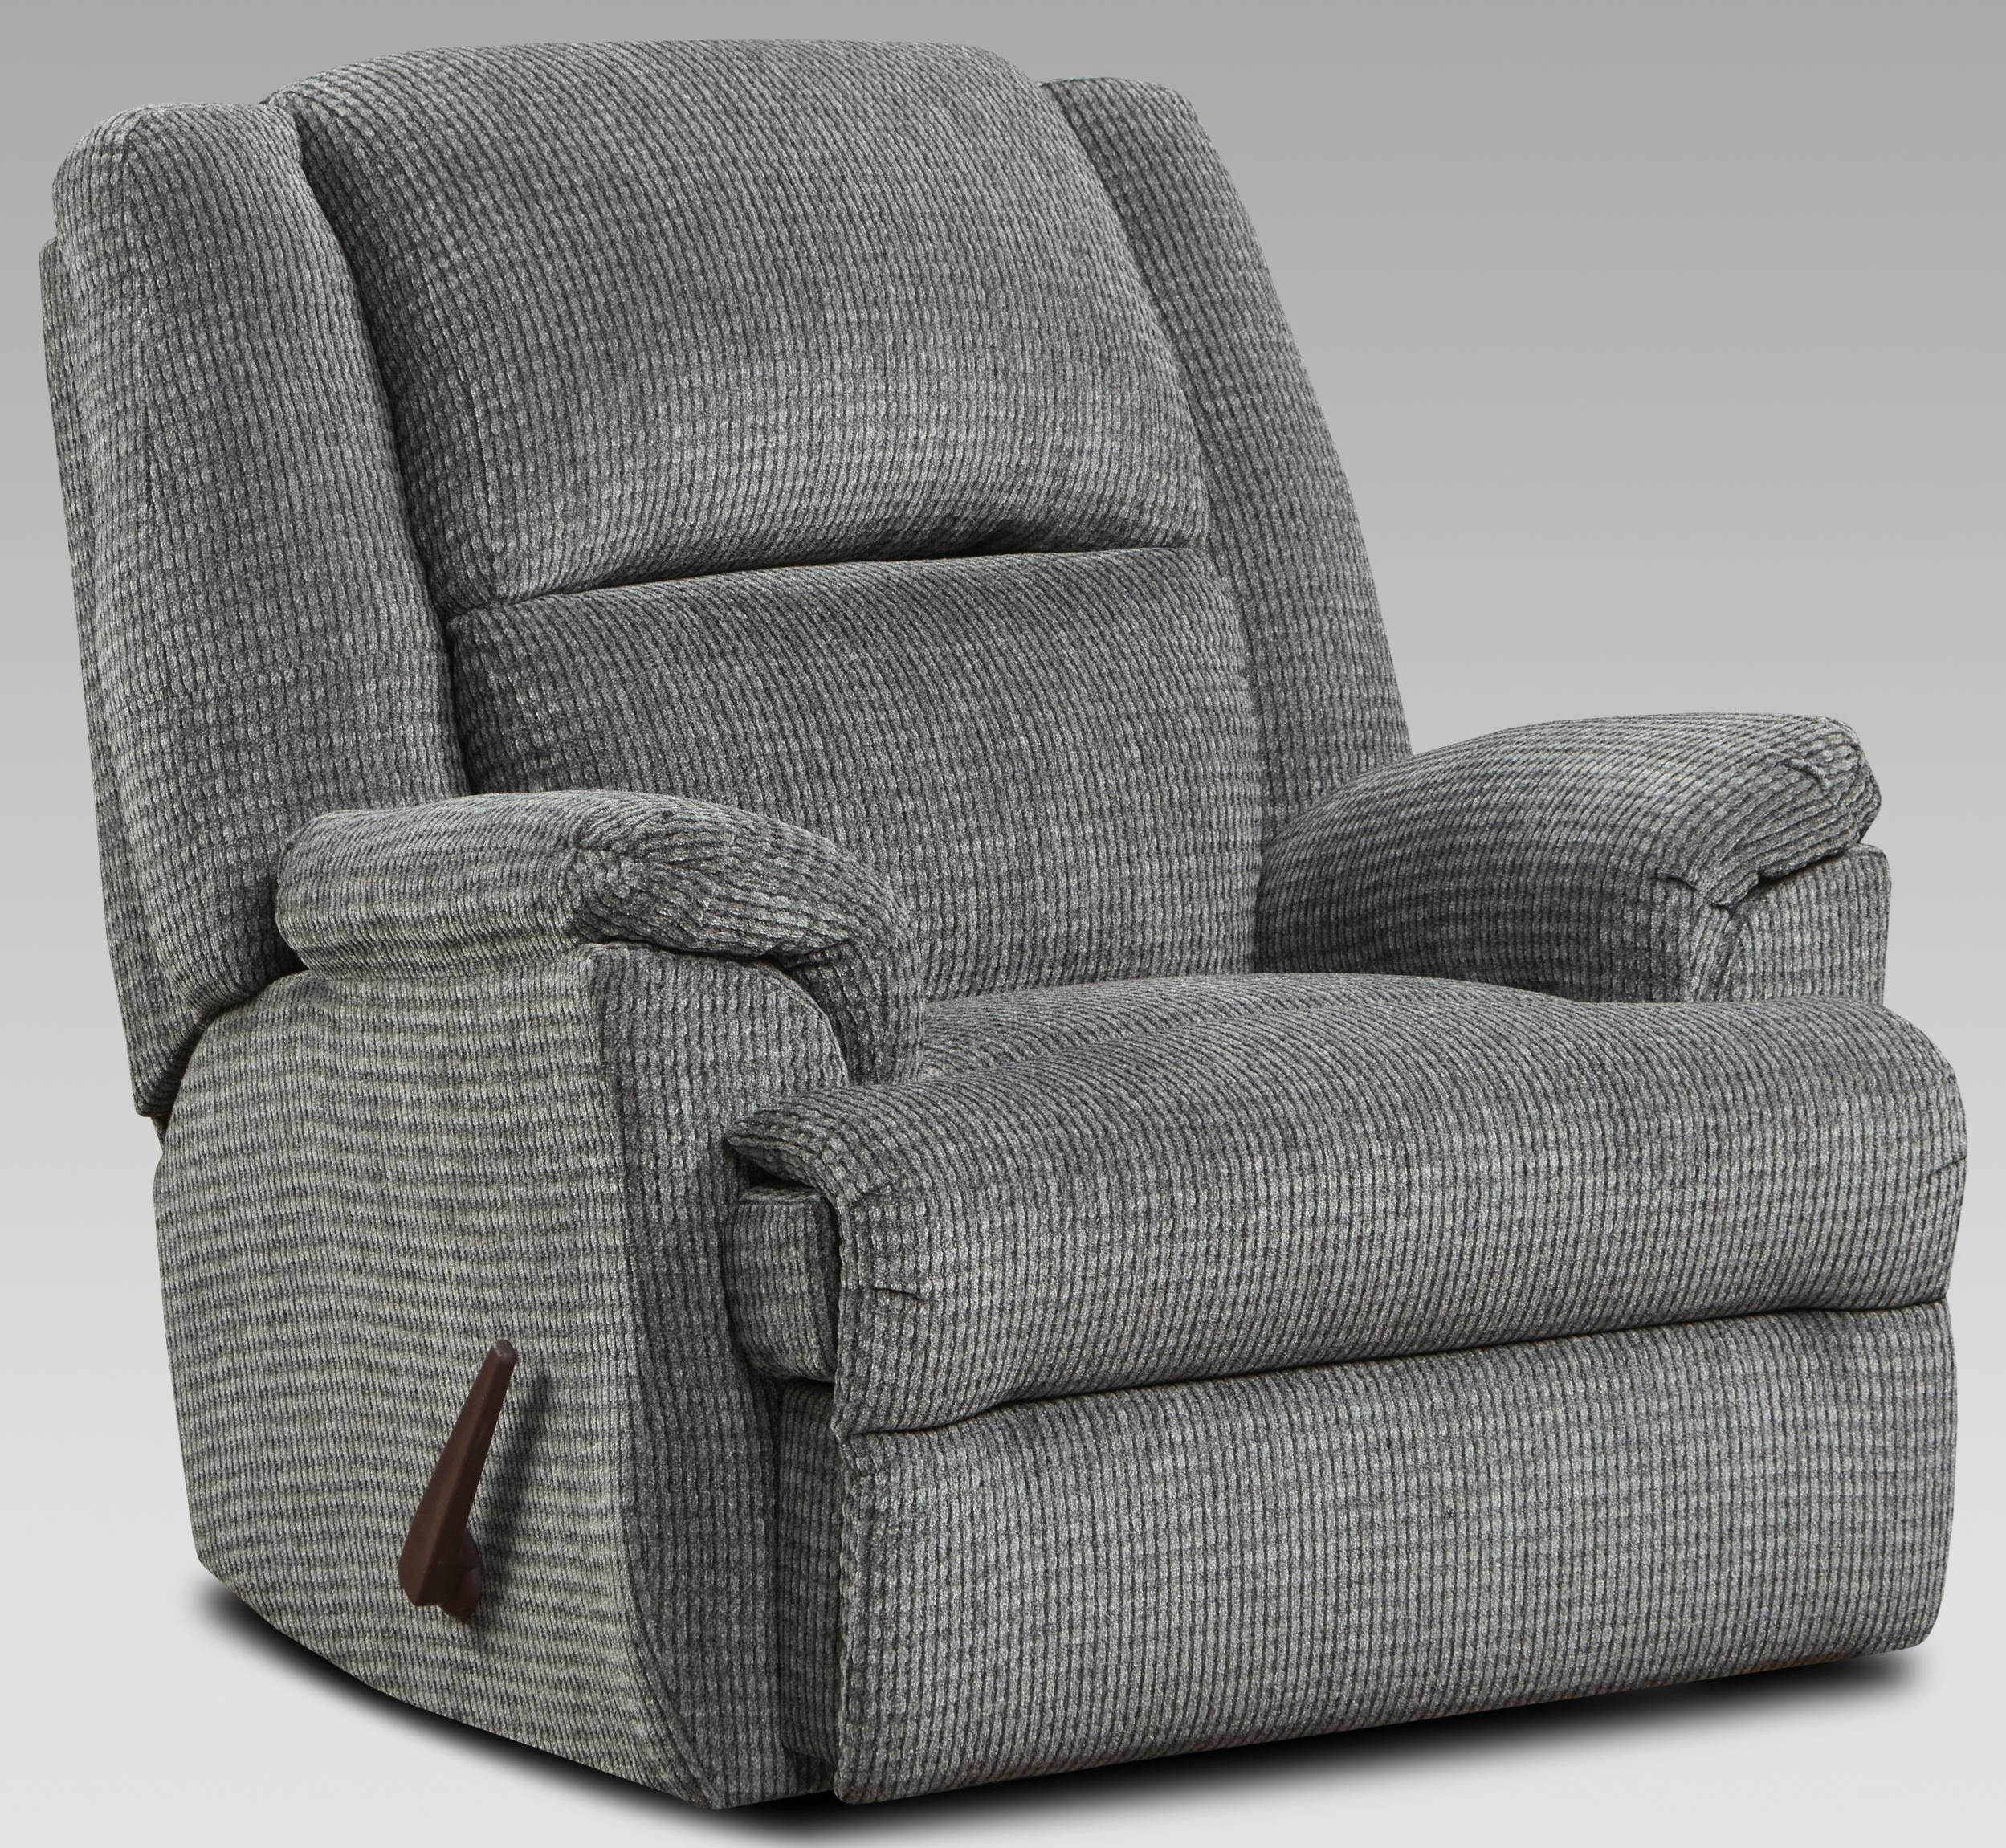 2600 2600 PEWTER RECLINER by Affordable Furniture at Furniture Fair - North Carolina